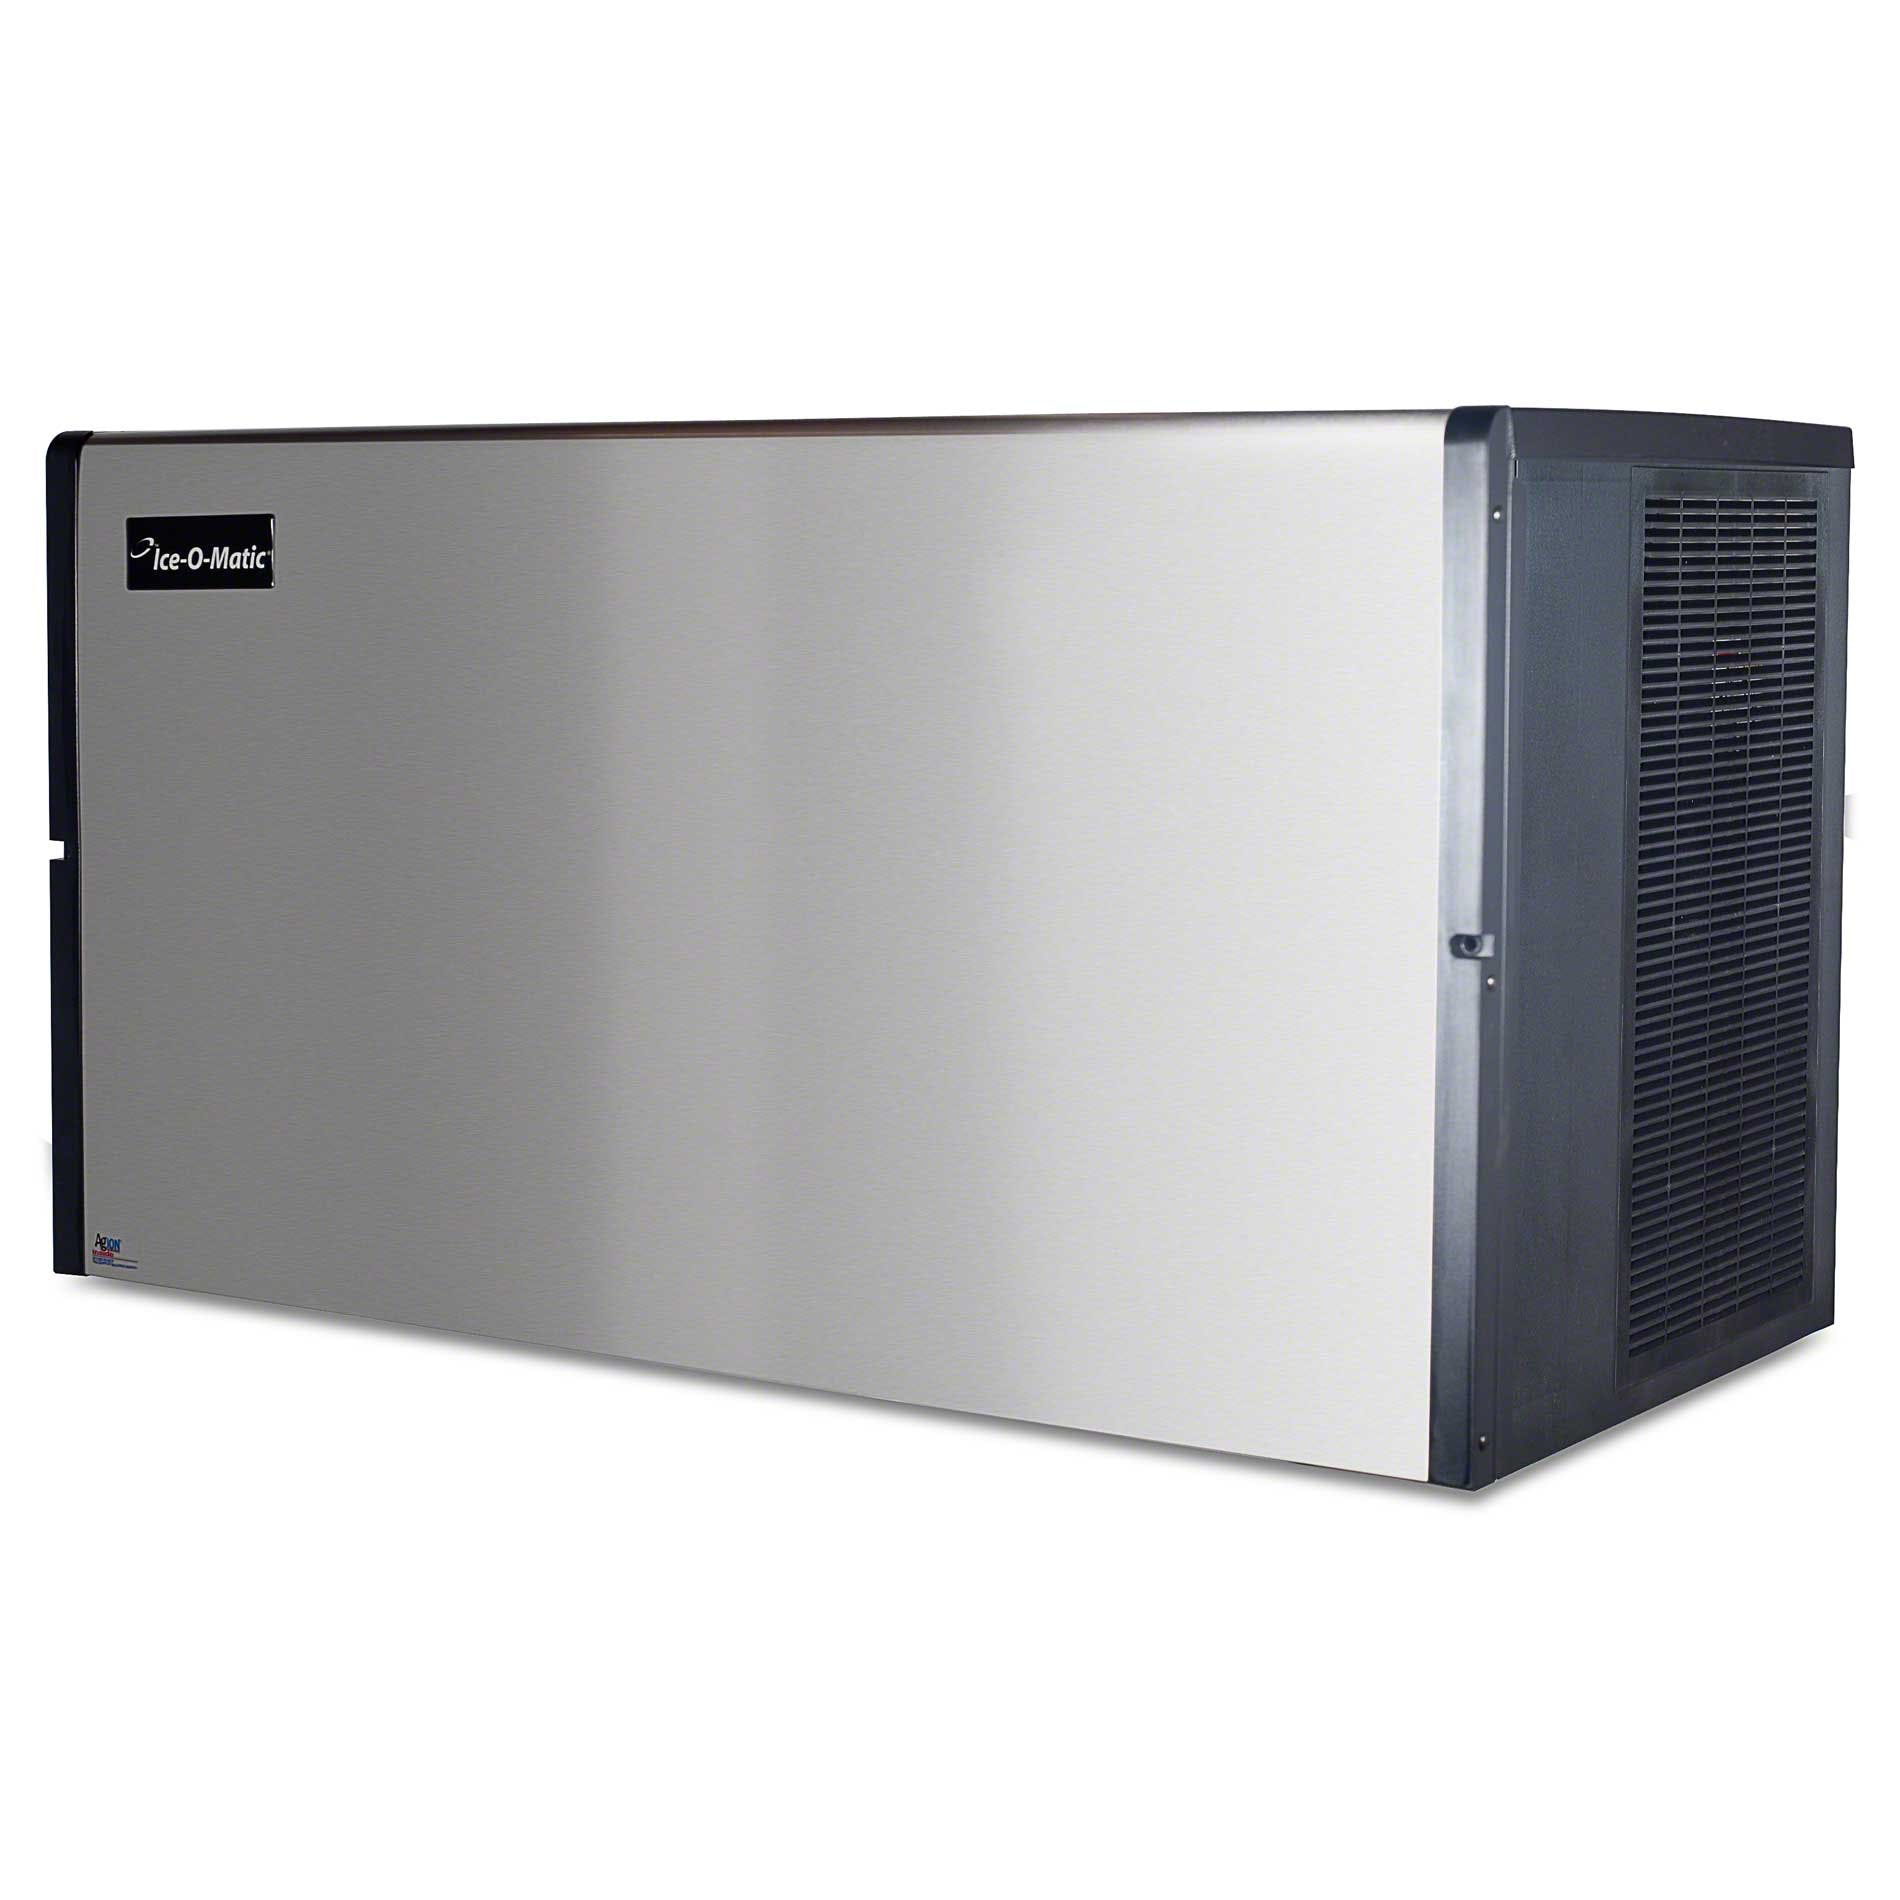 Ice-O-Matic - ICE1406HA 1469 lb Half Size Cube Ice Machine Ice machine sold by Food Service Warehouse